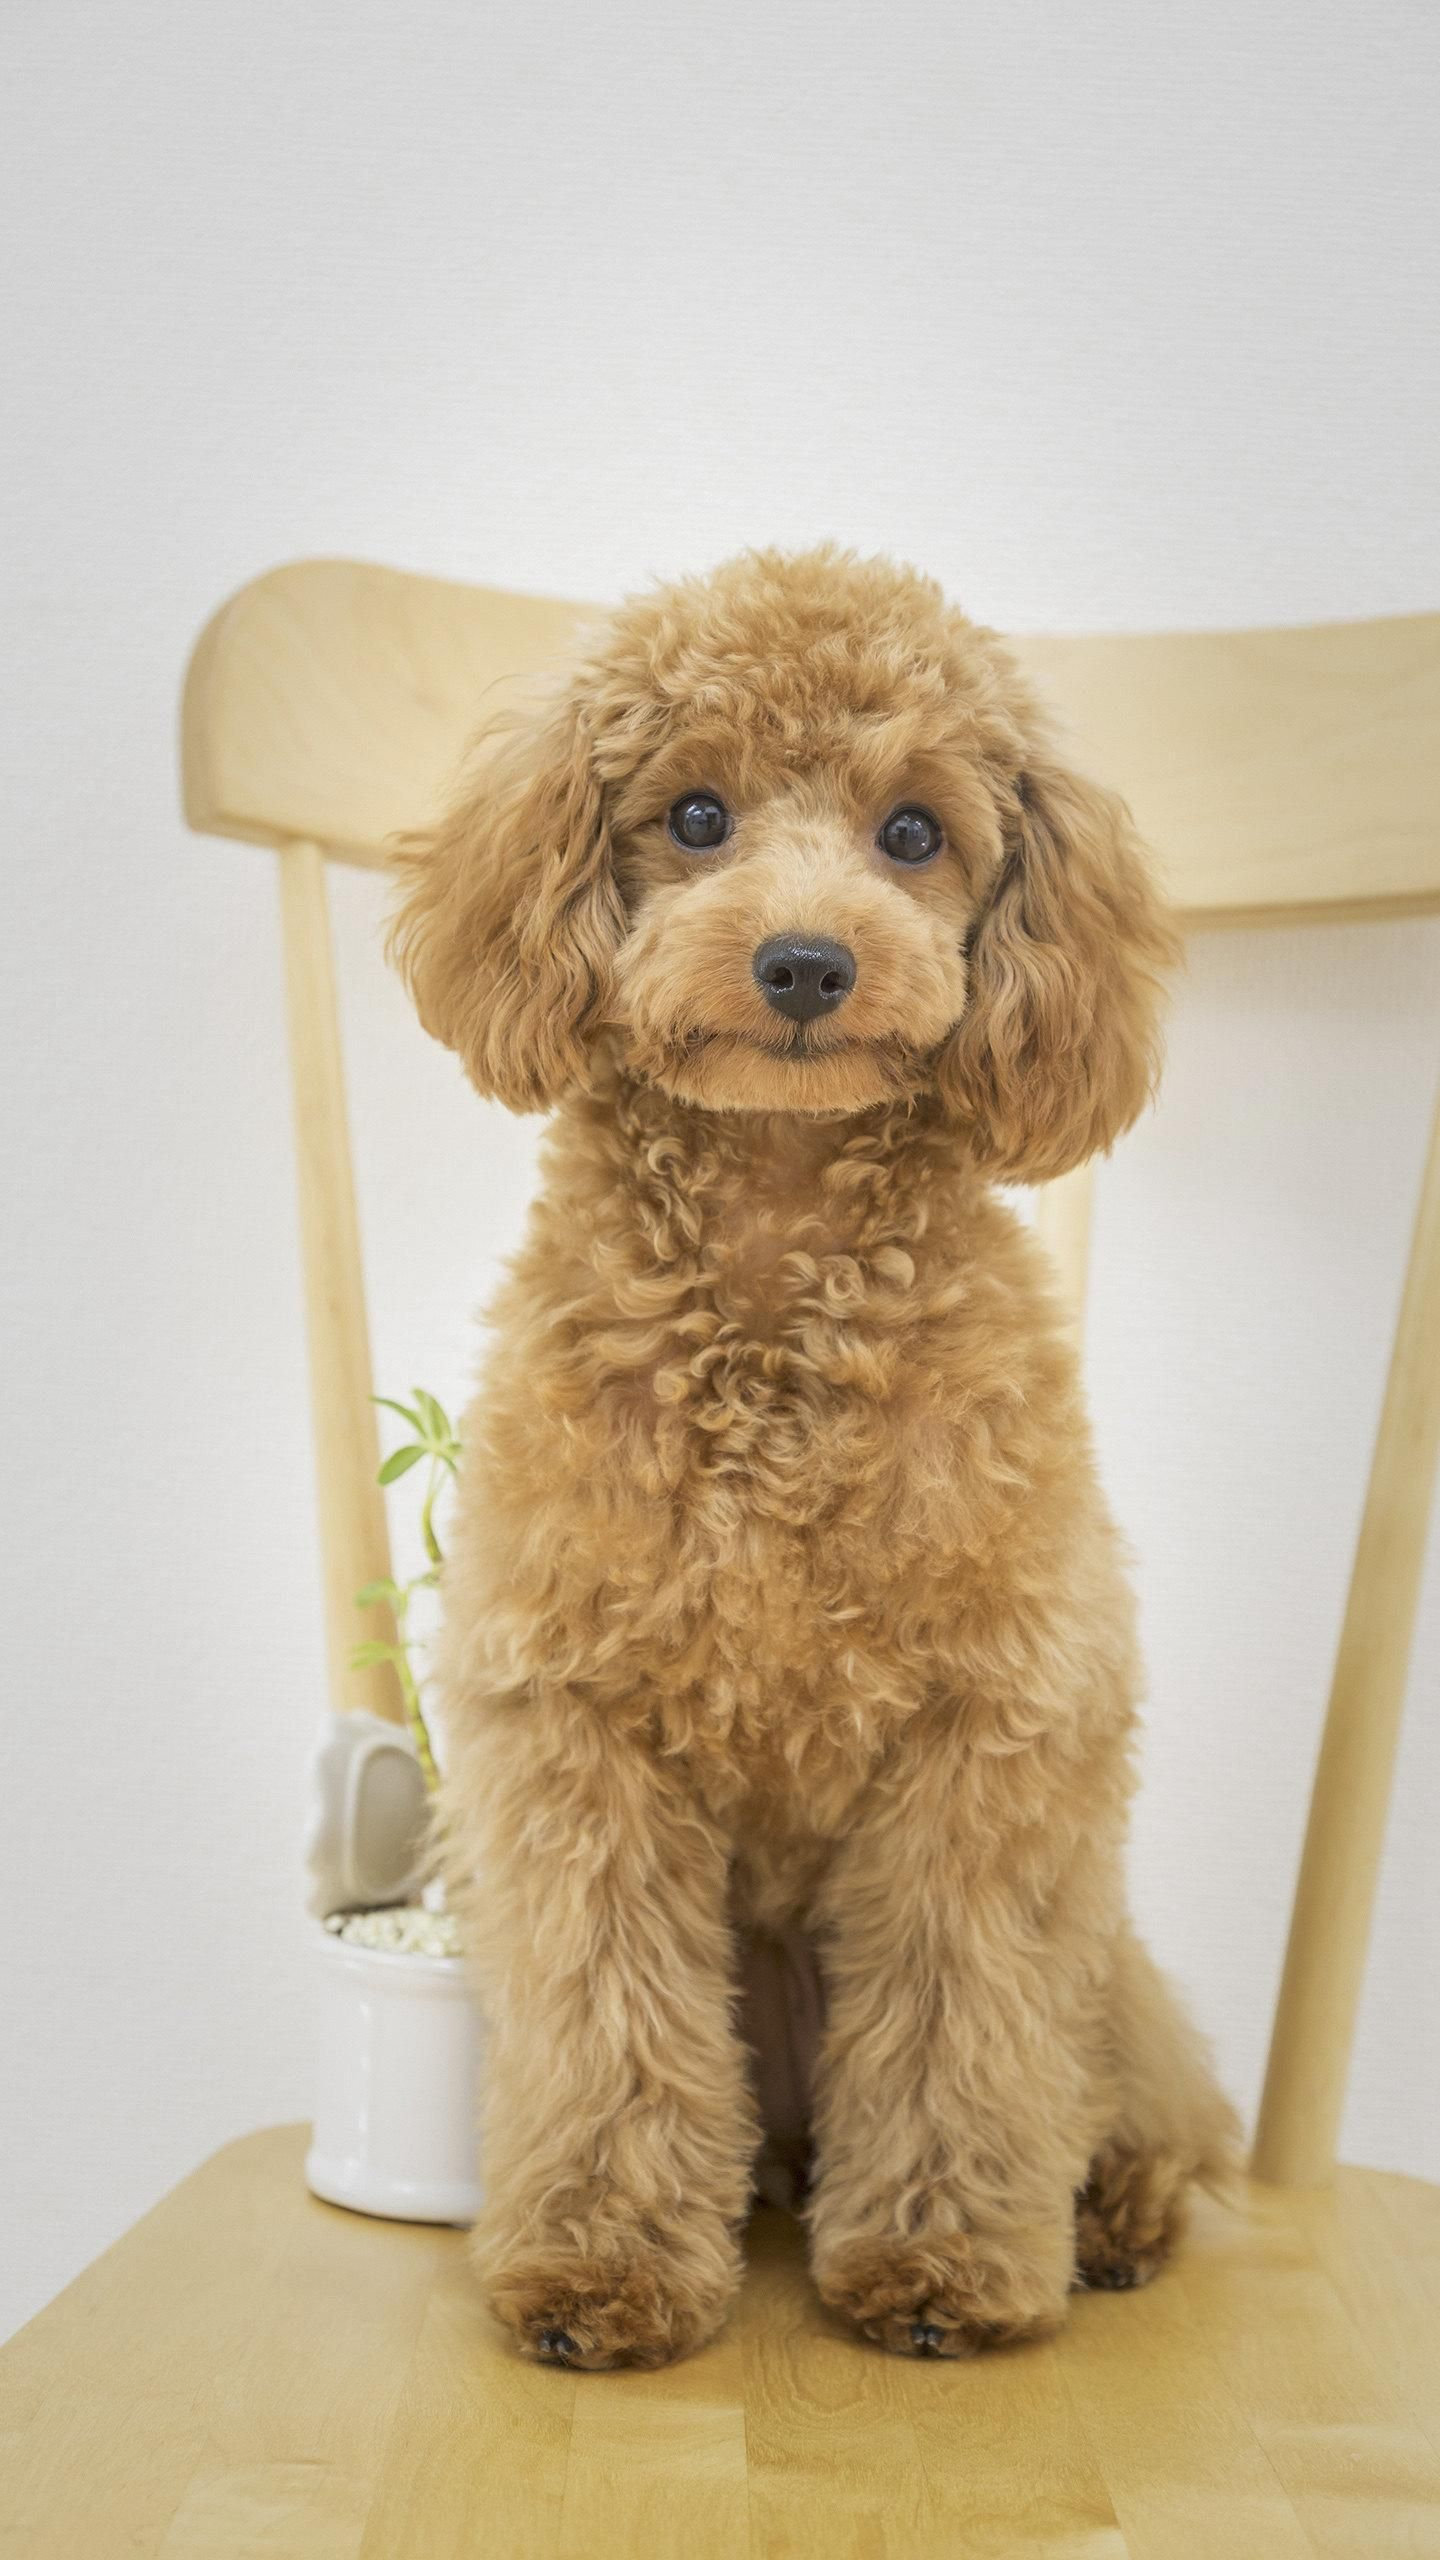 Poodle A Dog With Thick Curly Hair Natural Actively Smart